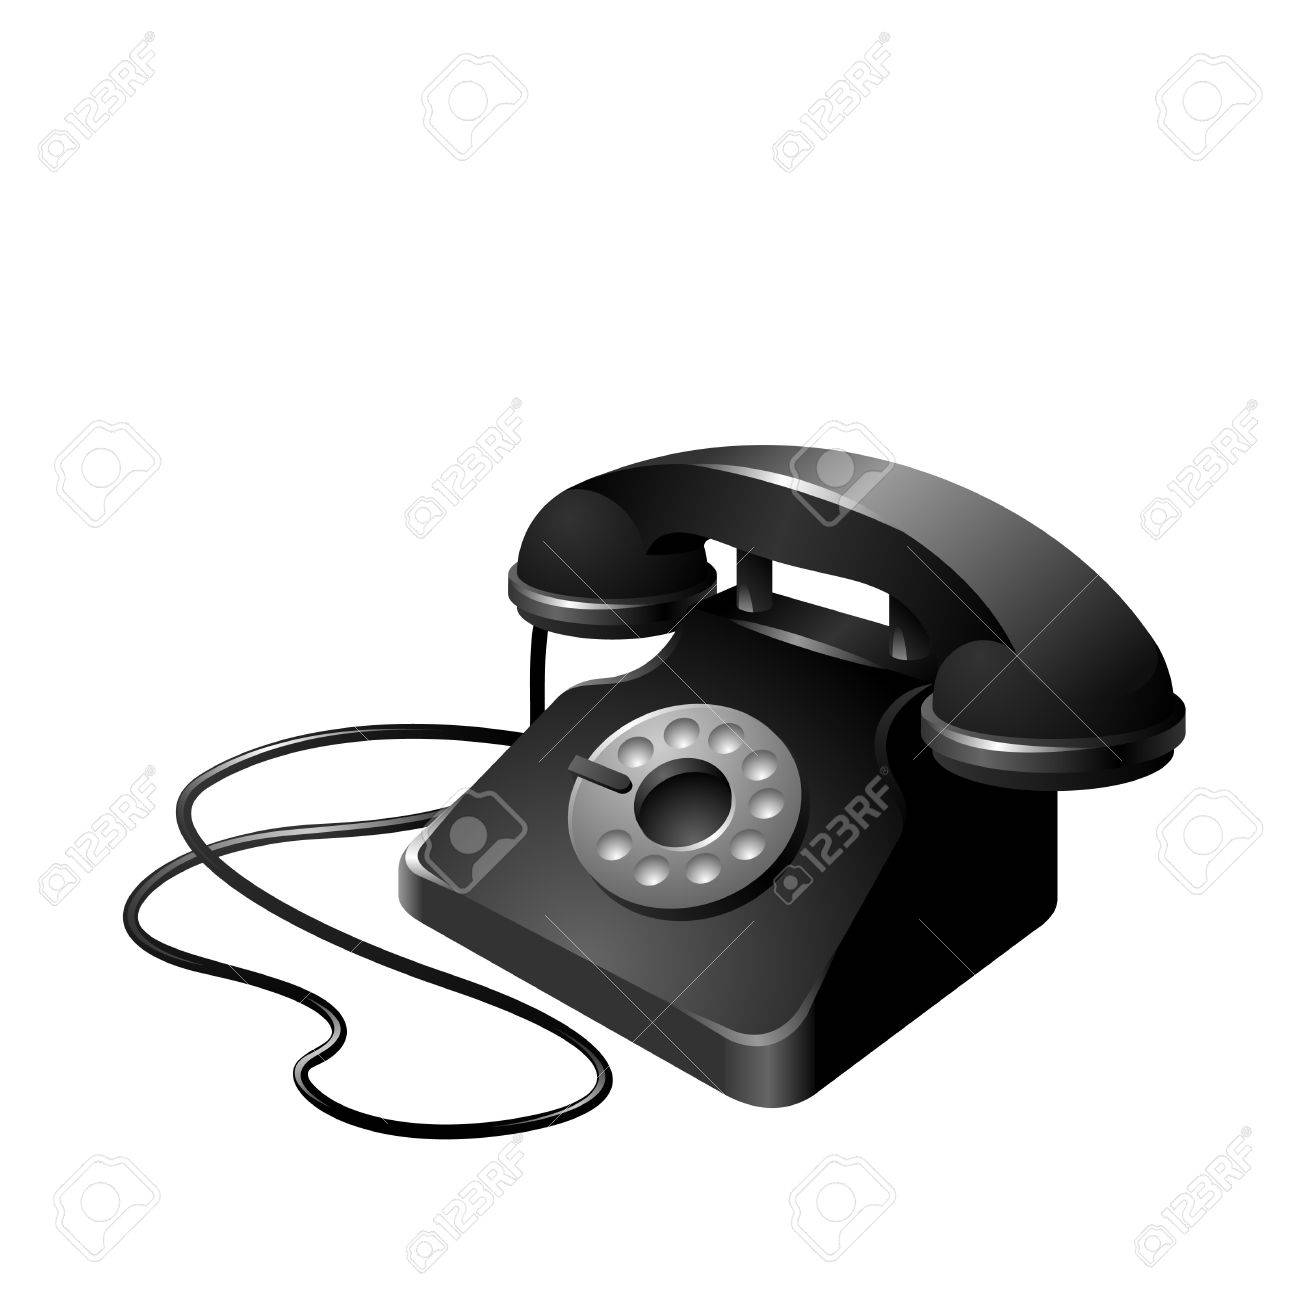 clean and simplistic vector illustration of a telephone set Stock Vector - 10121591